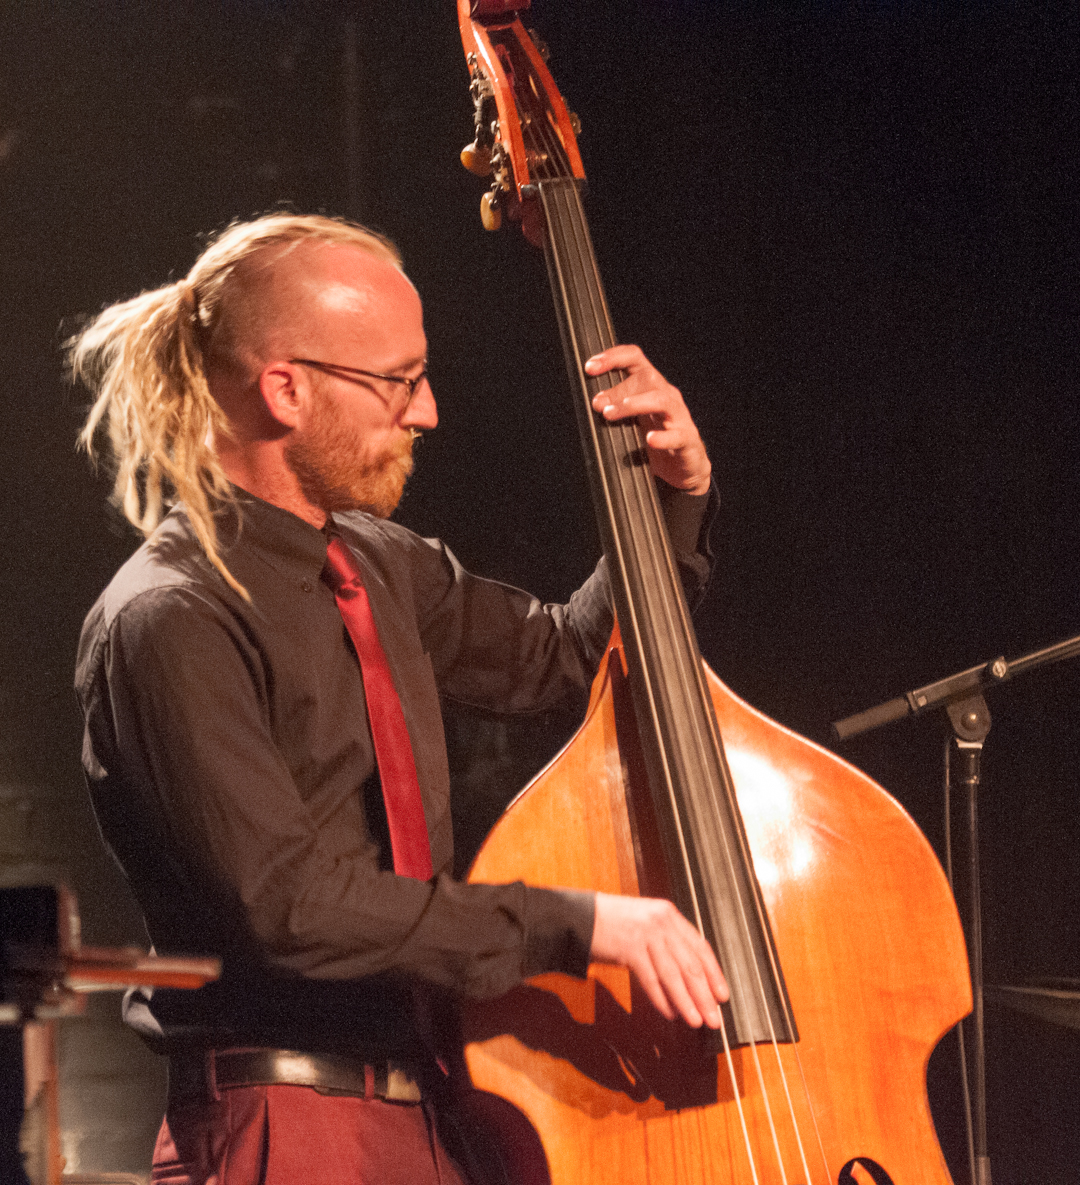 Rex Horan with the Neil Cowley Trio at the Montreal International Jazz Festival 2012